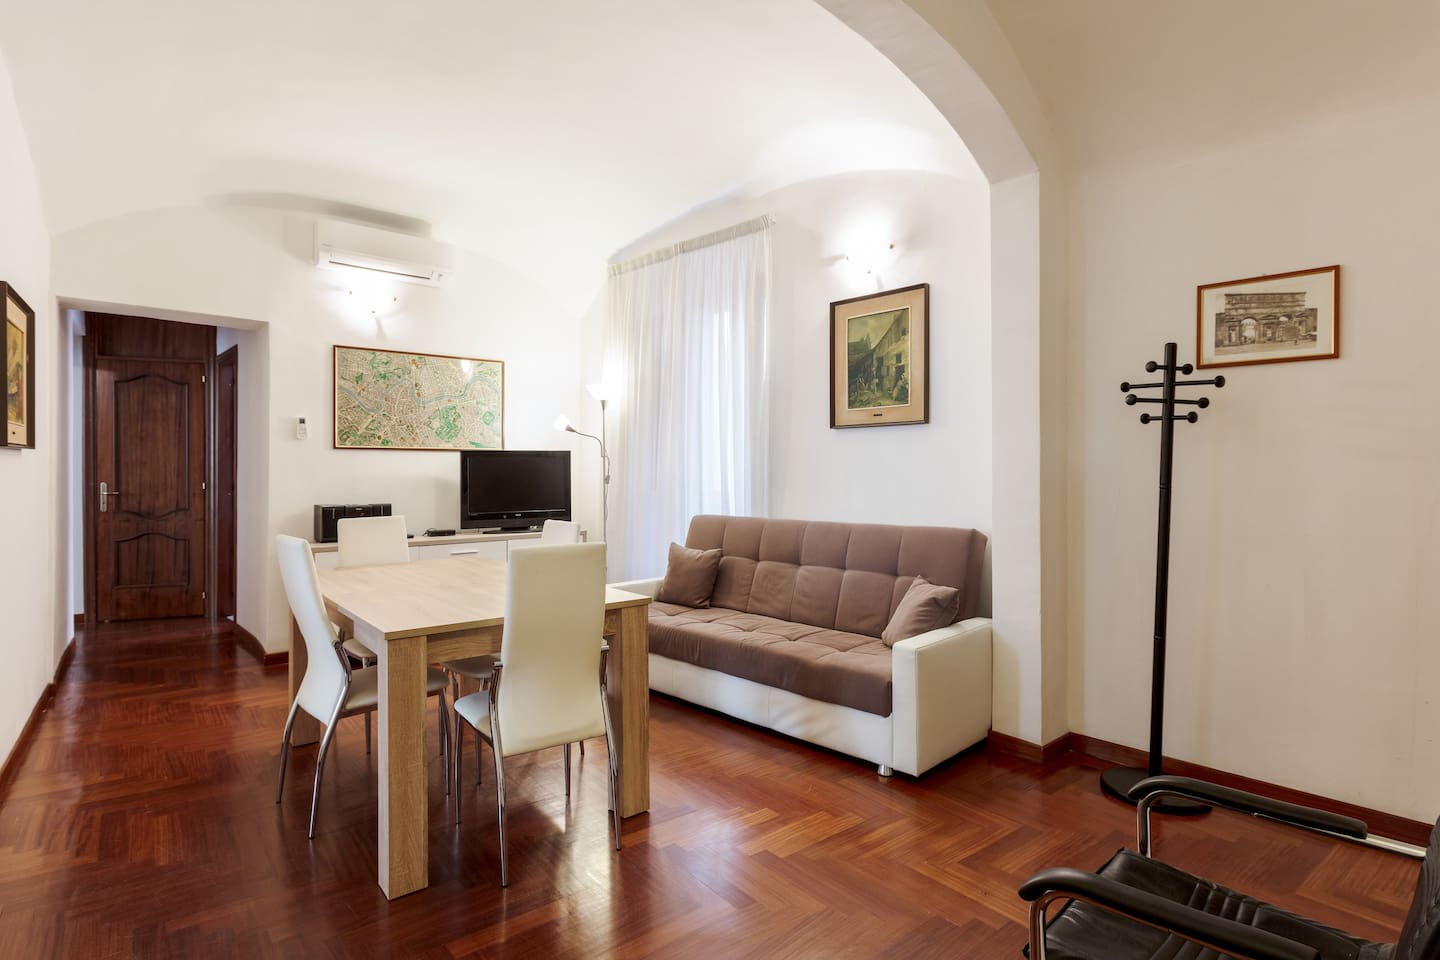 The living room: the dining table, AC, TV & sofa